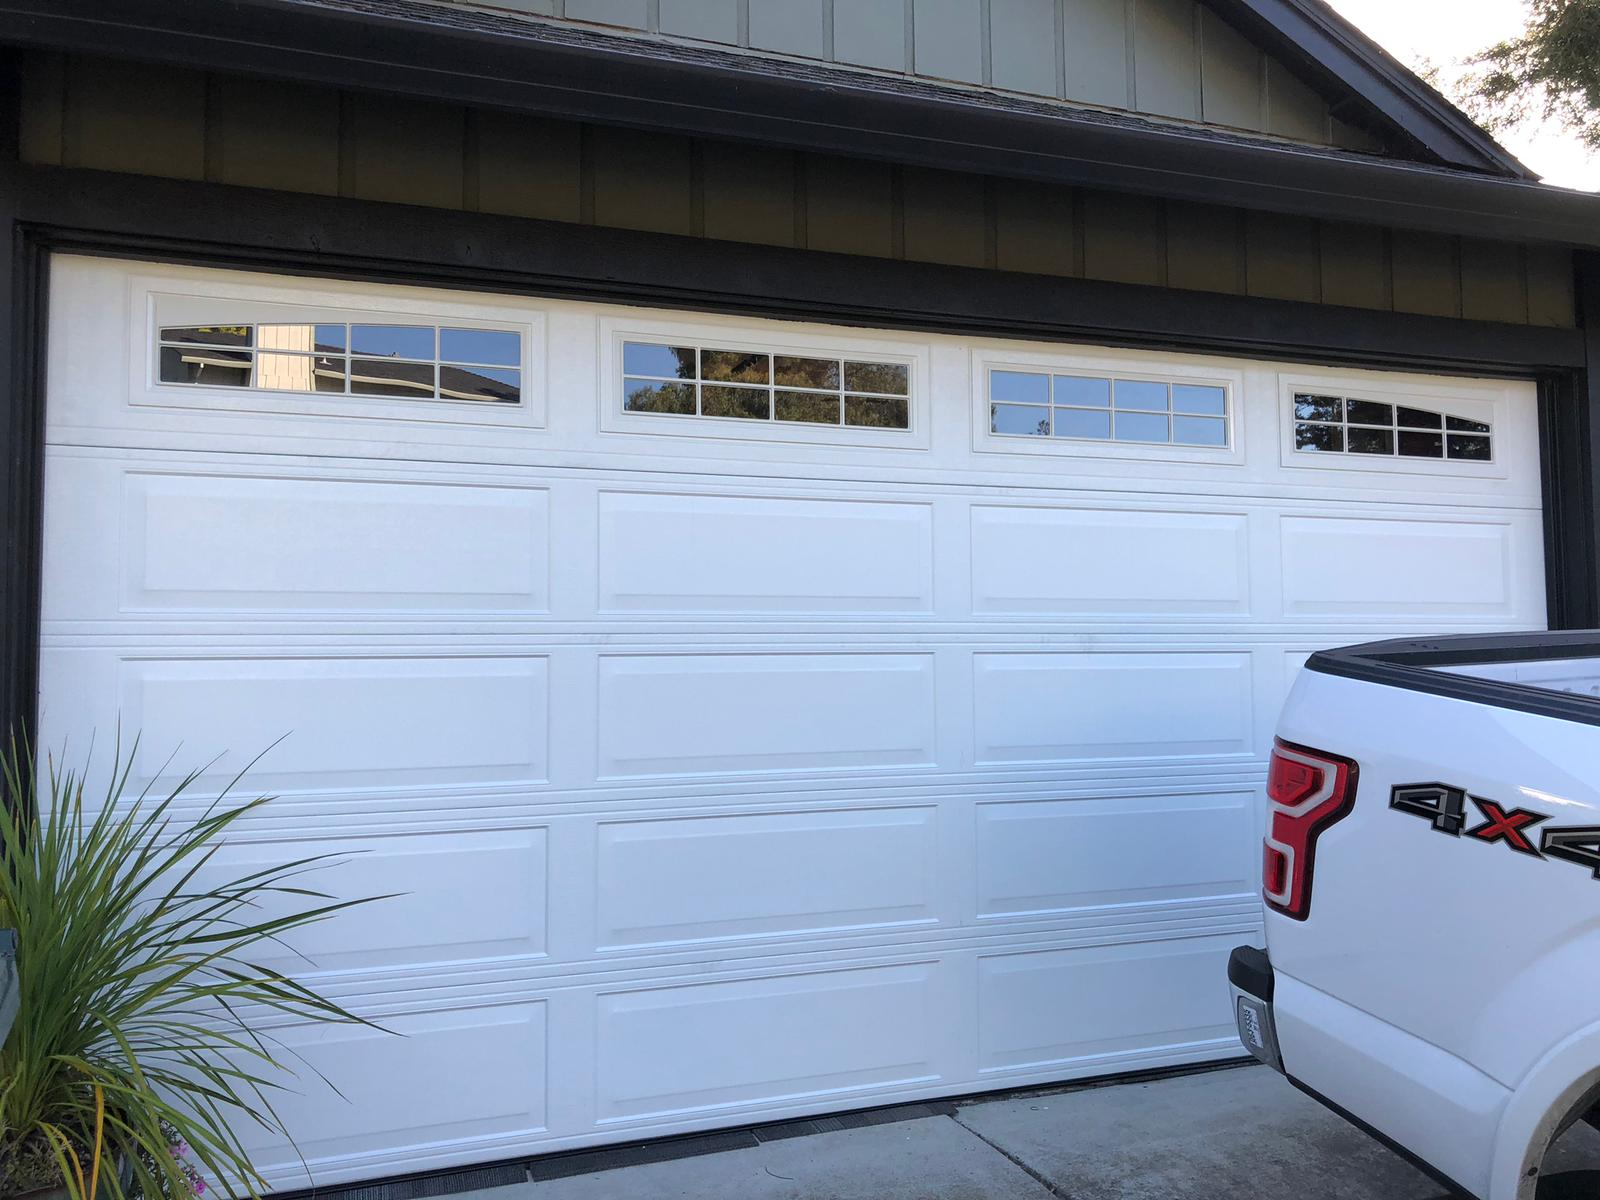 Garage Door Repair Farmington, Fiddletown